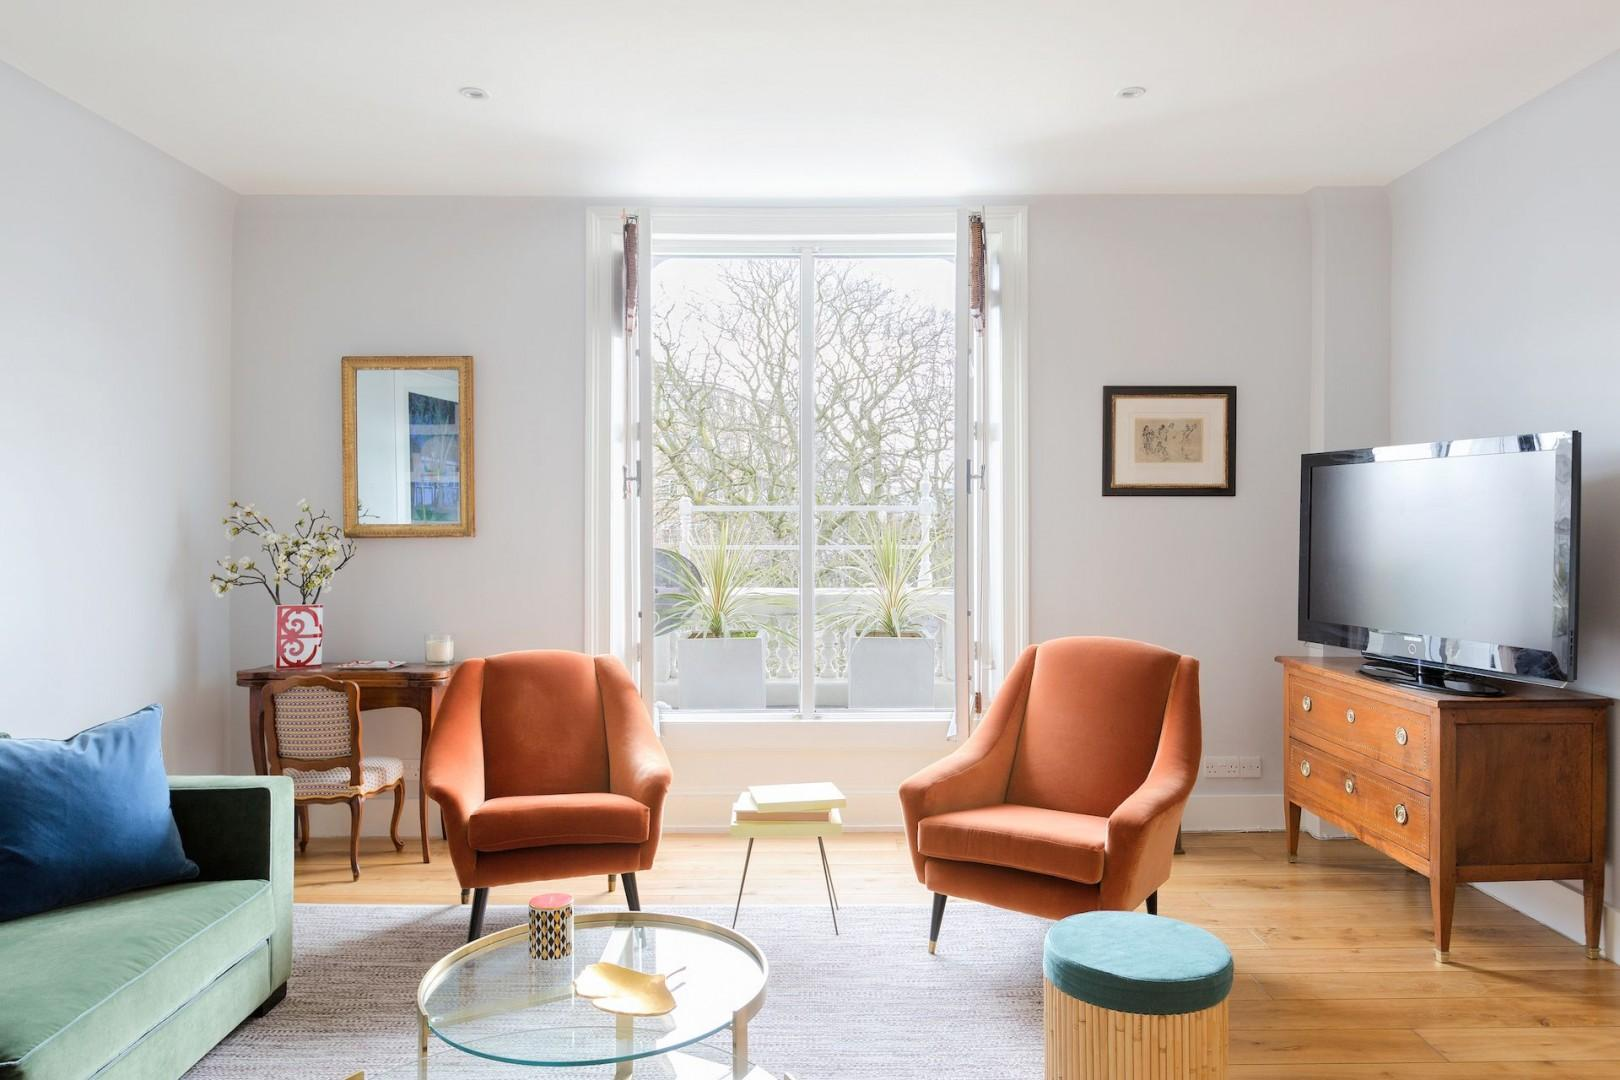 Natural light floods the living area from the large windows